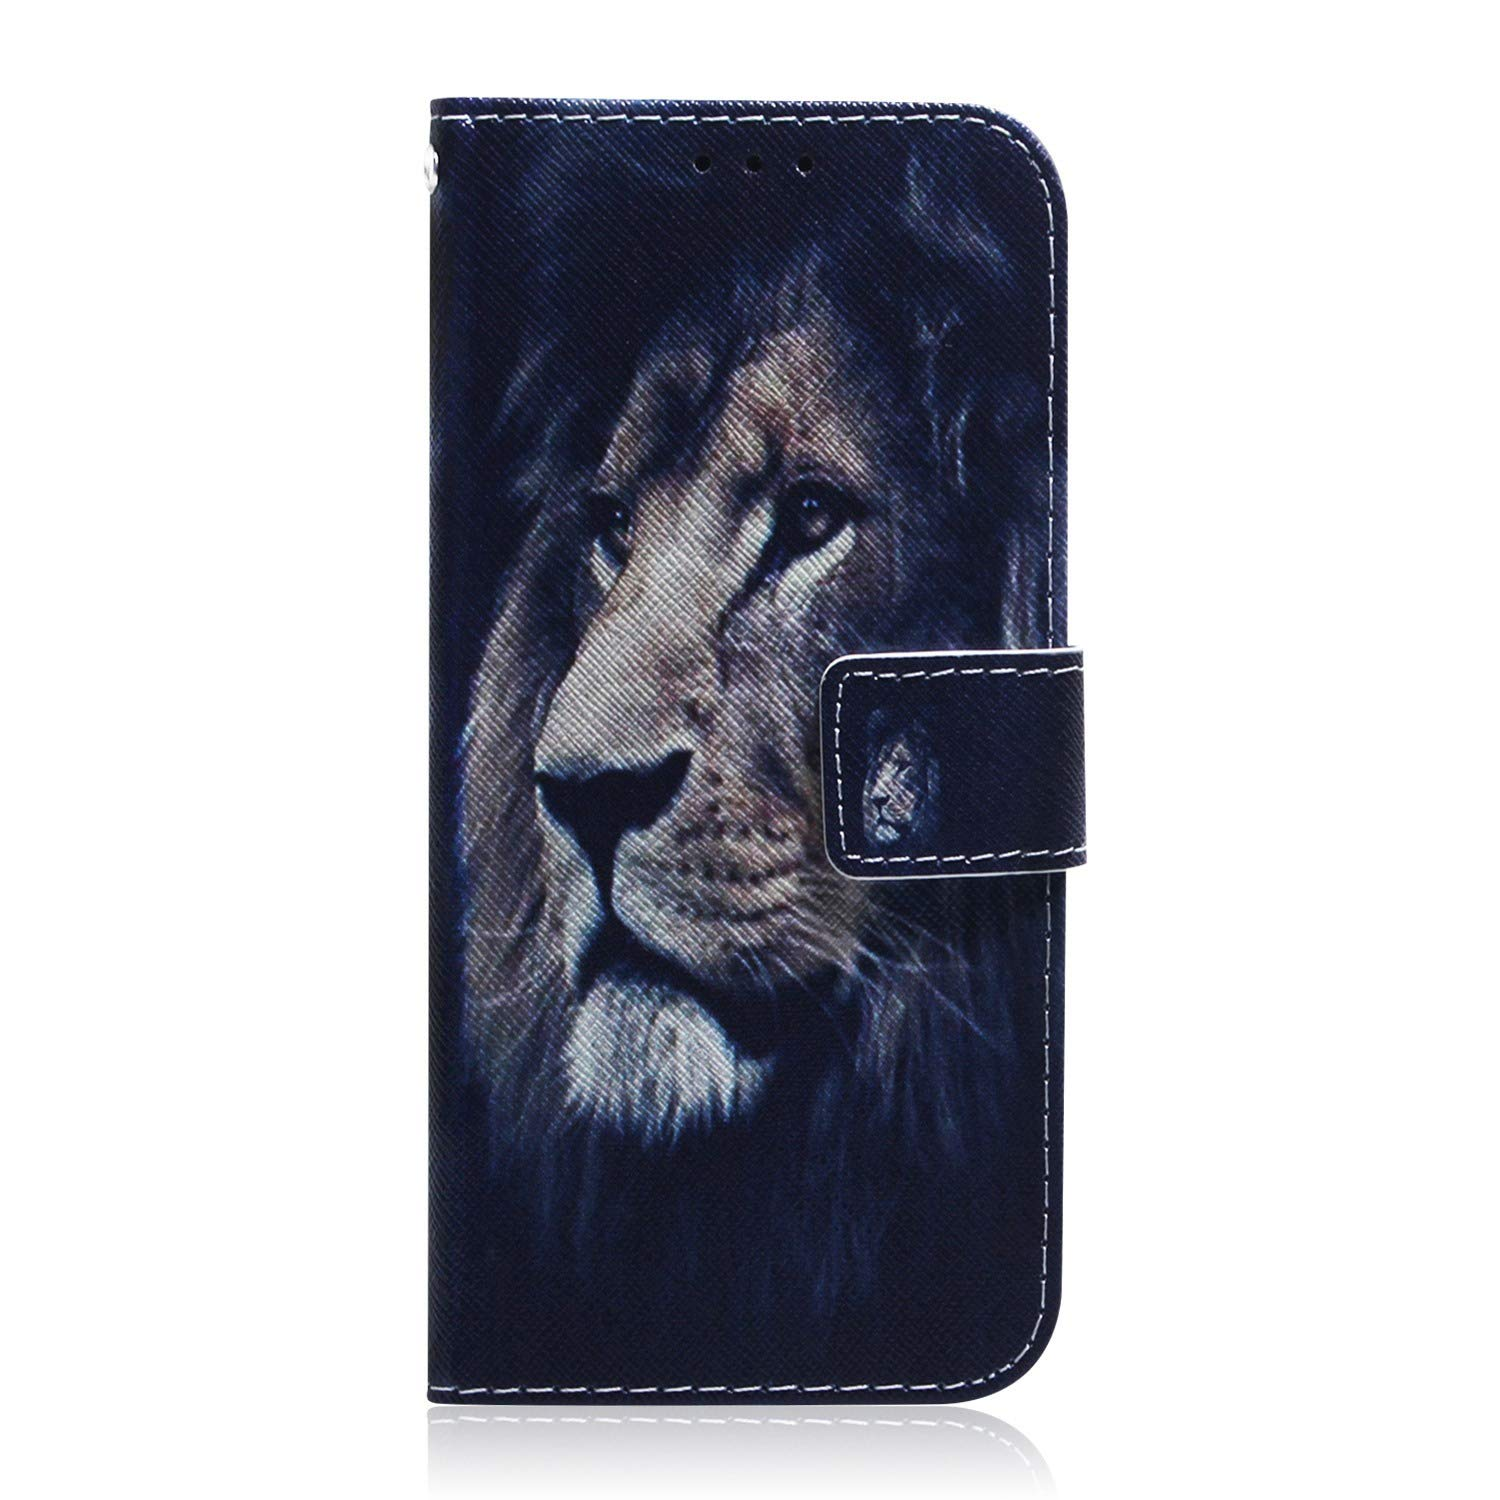 Reevermap Samsung Galaxy A10 Case Leather Shockproof Flip Wallet Magnetic Clasp Viewing Stand Function Notebook Bumper Cover for Samsung Galaxy A10 with Card Holder Panda